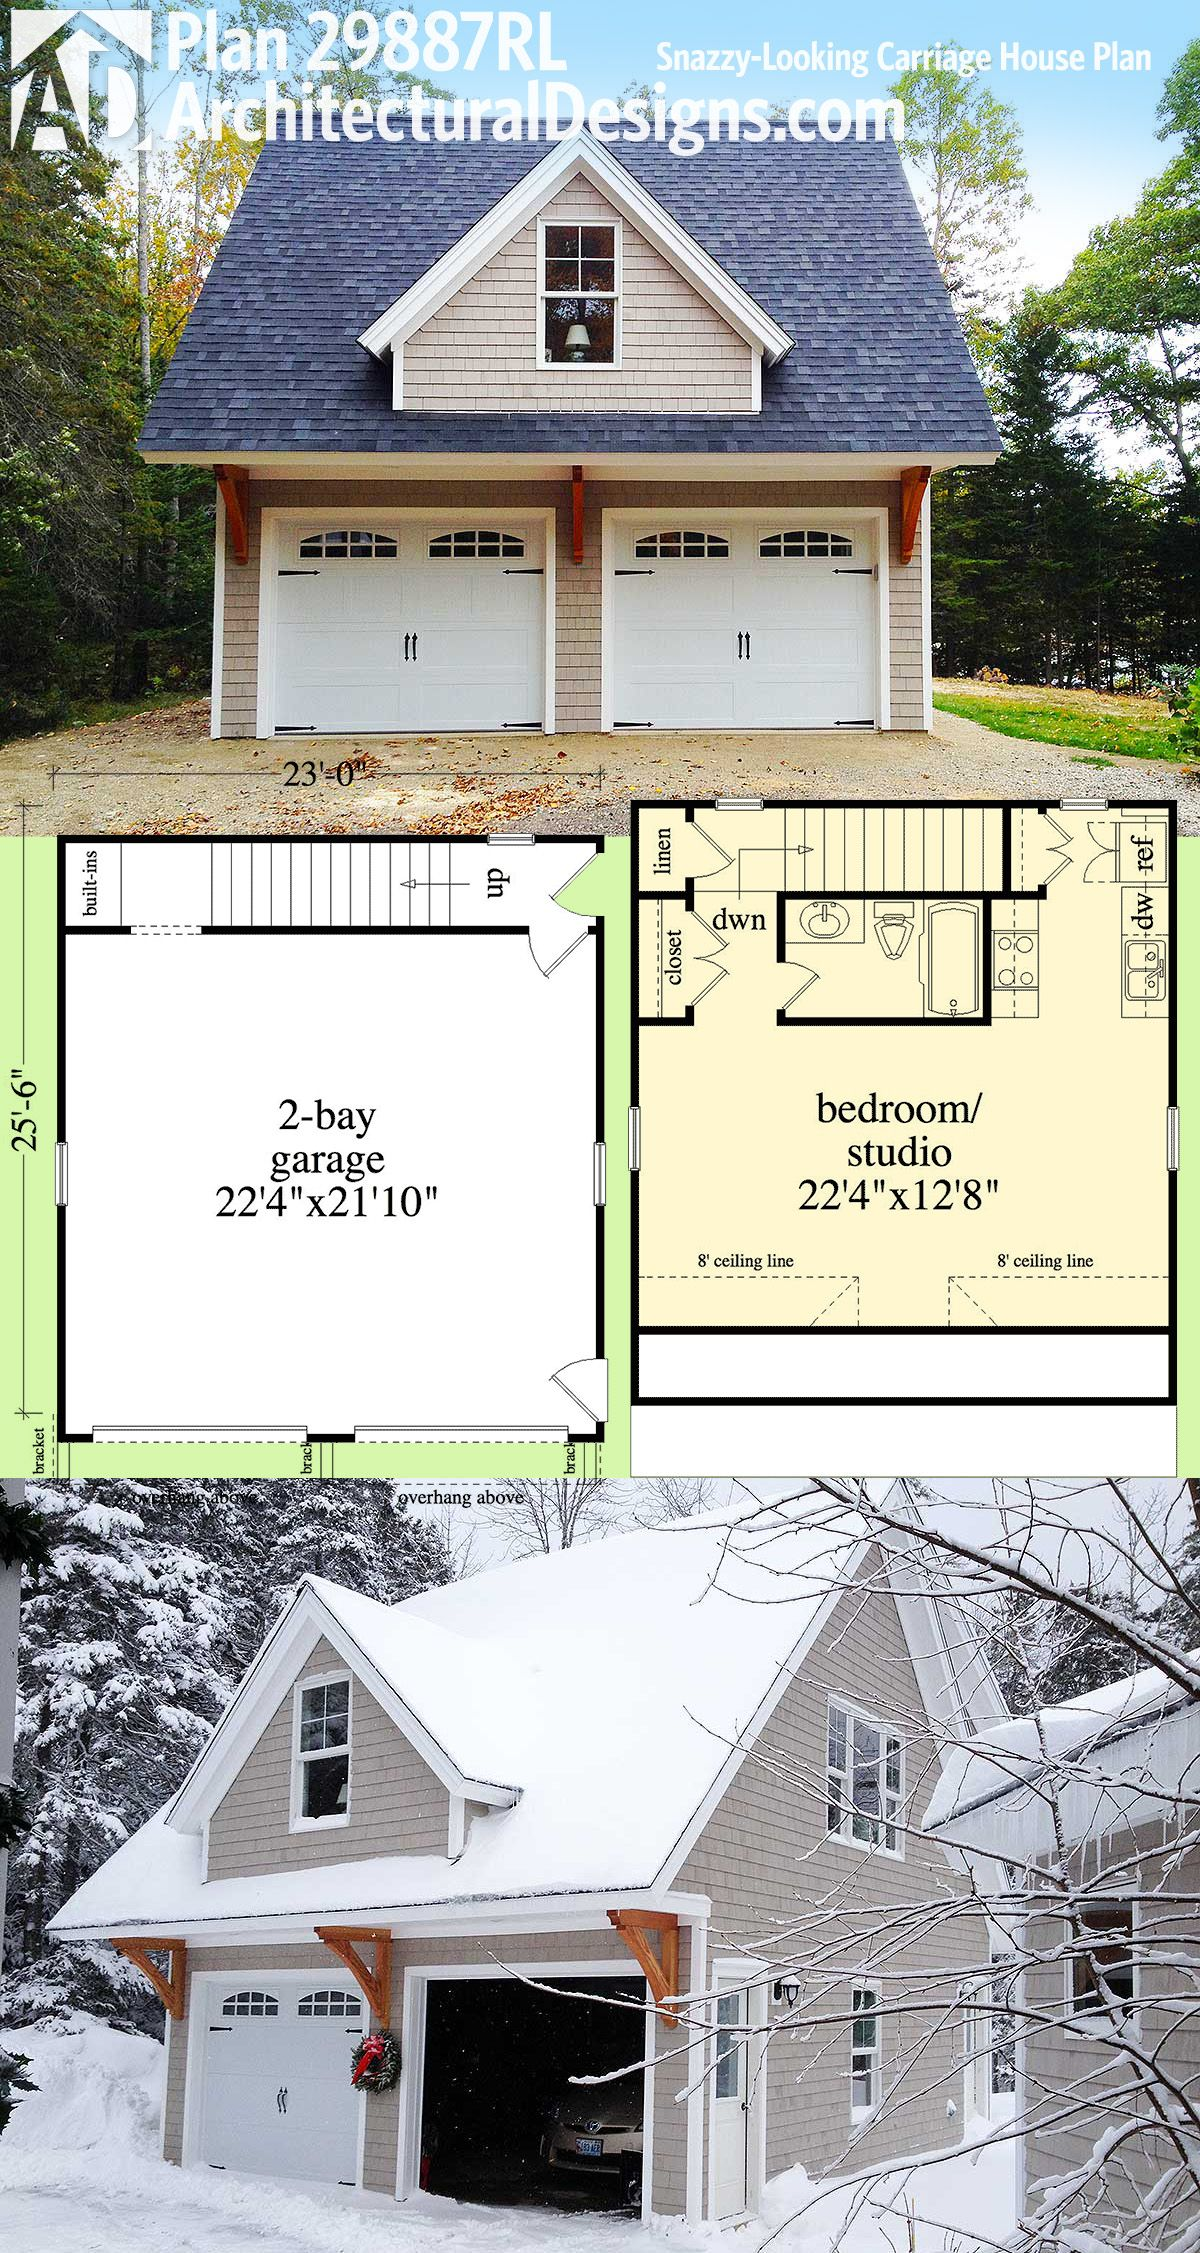 Plan 29887rl snazzy looking carriage house plan for Coach house garage prices